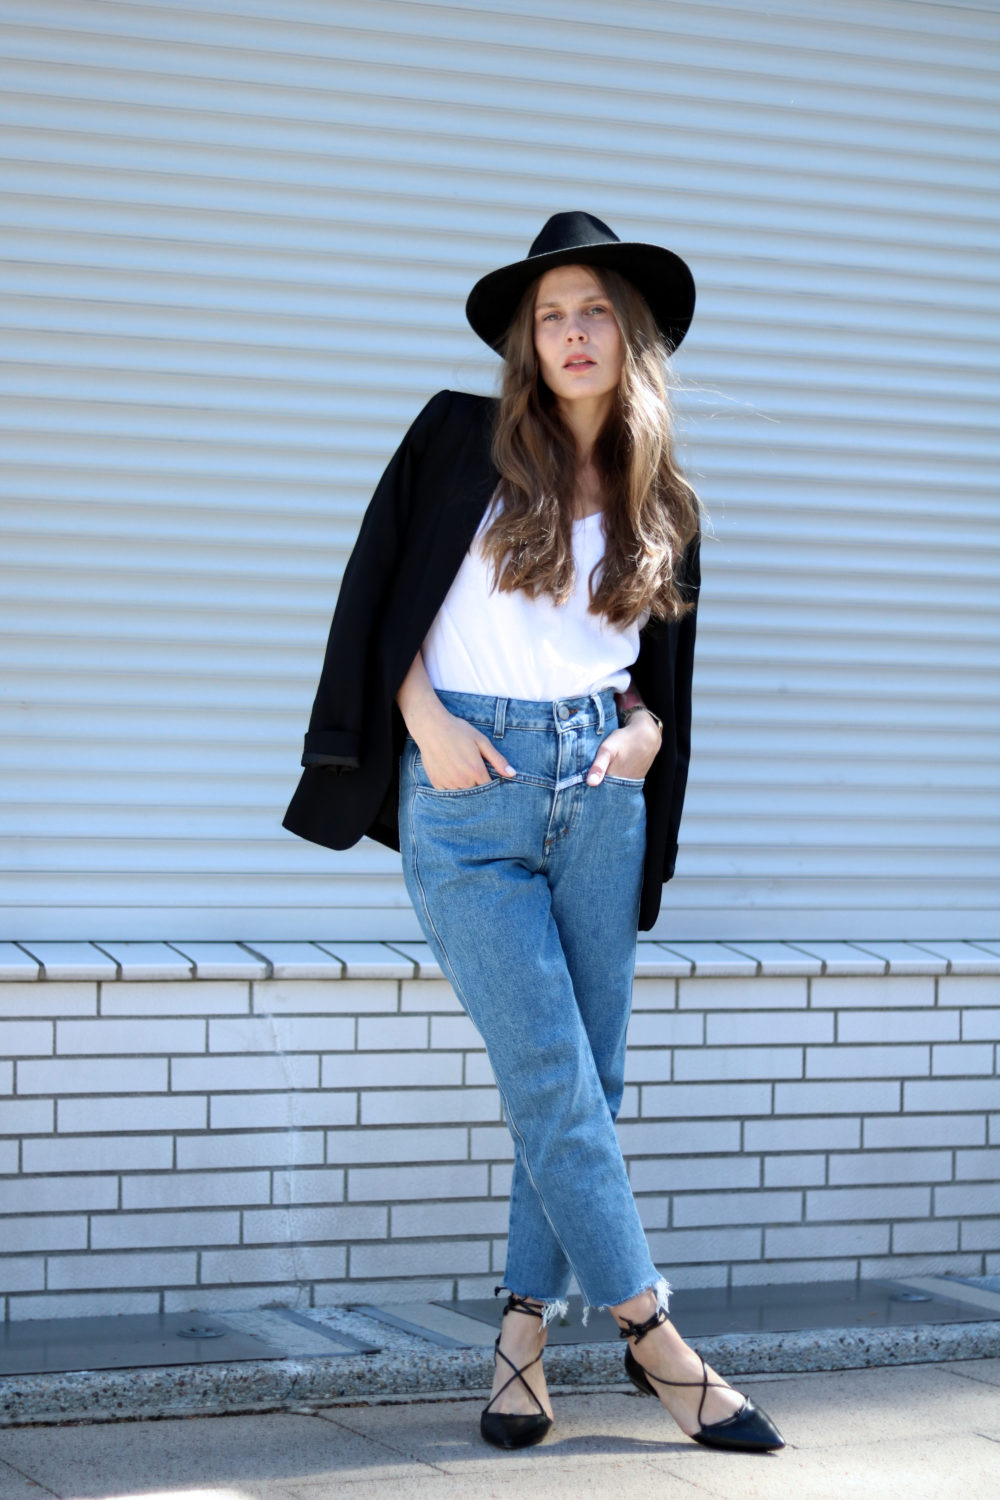 MEY_MARIDALOR_THE_WHITE_SHIRT_OUTFIT_PEDAL_PUSHER_FRENCH_LOOK_STREETSTYLE